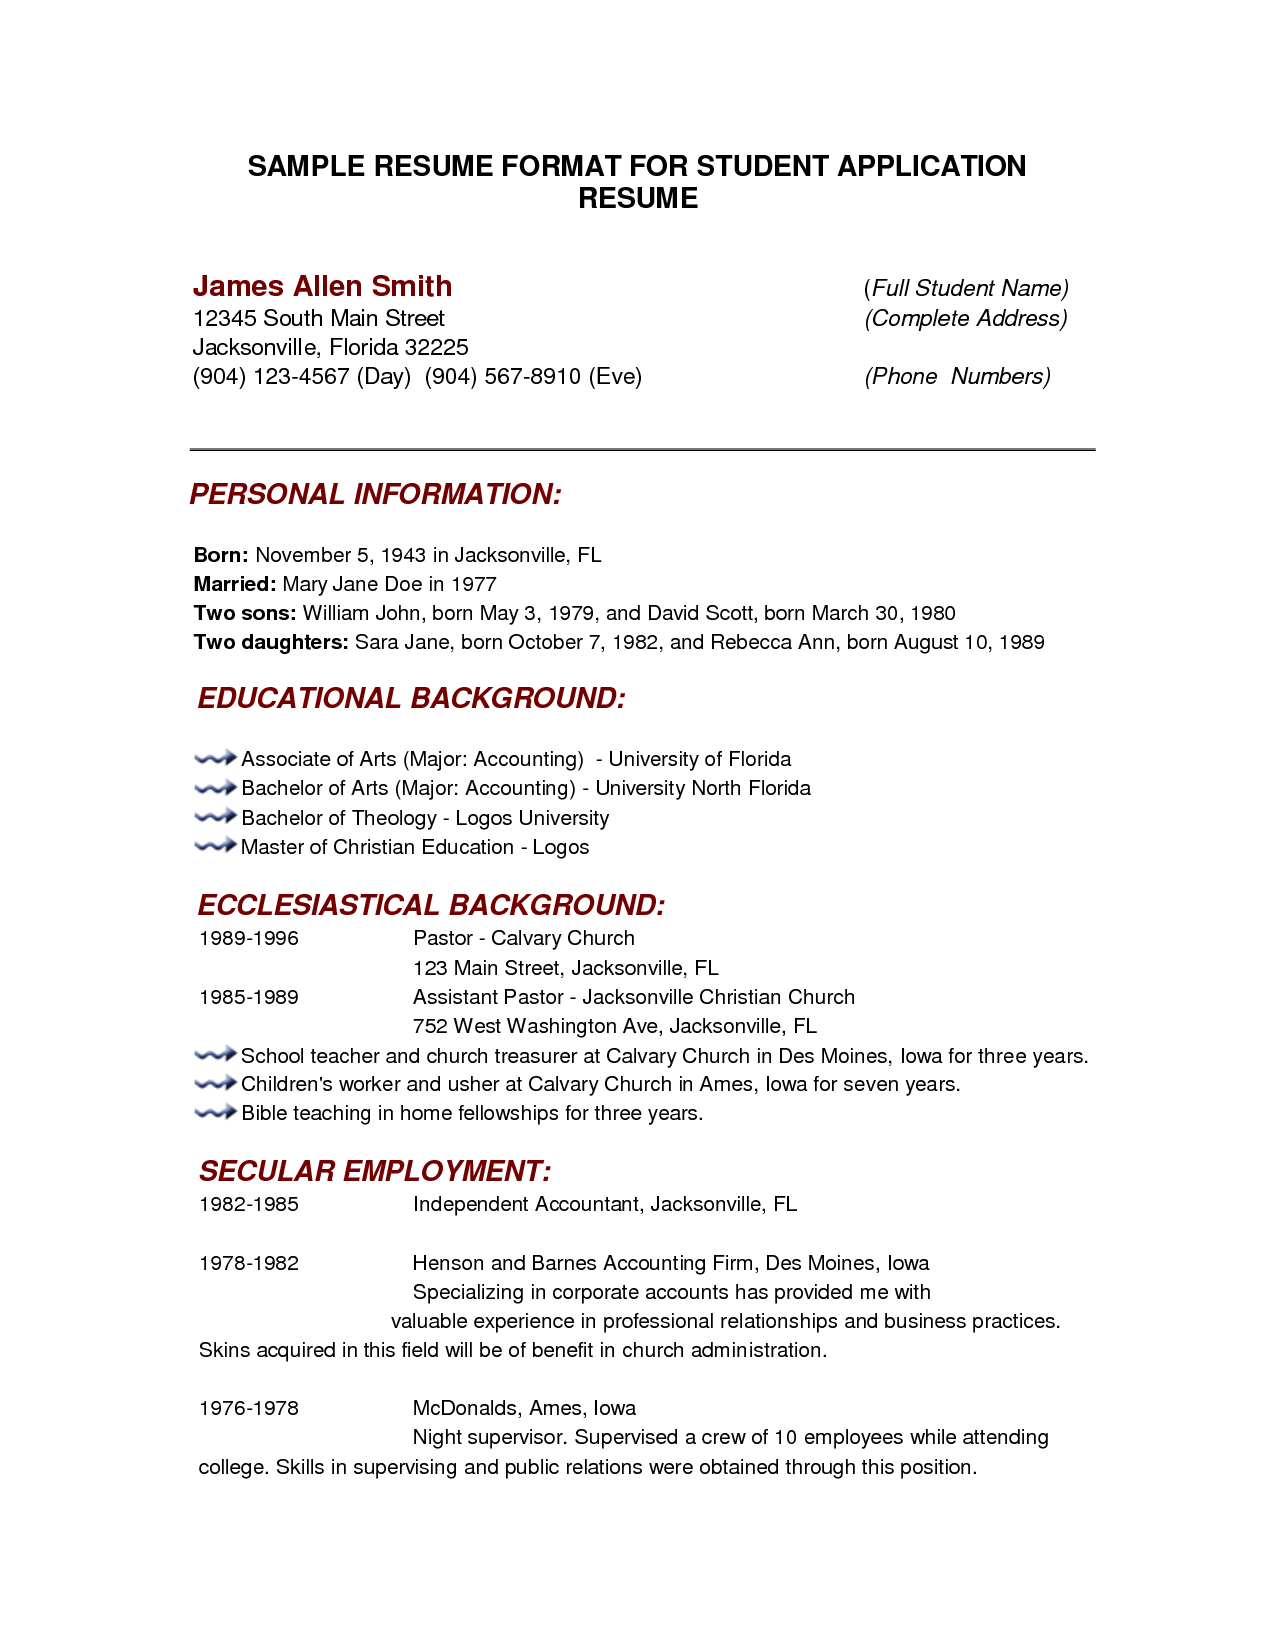 examples resumes best photos printable basic resume templates example samples word pdf best free home design idea inspiration - High School Resume Template Word